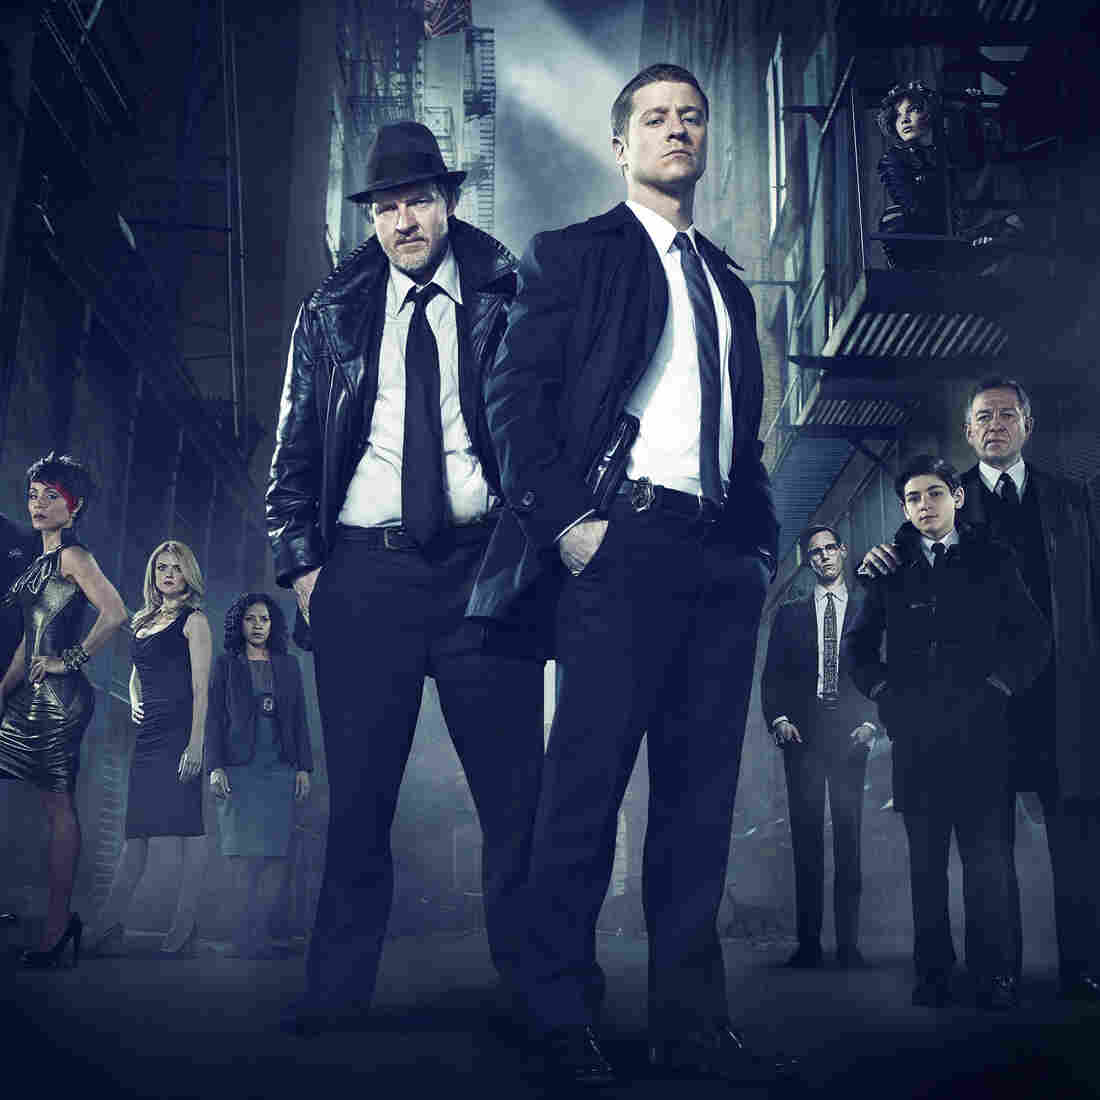 Ben McKenzie (front right) and Donal Logue (left) lead the cast of Fox's Batman prequel Gotham.